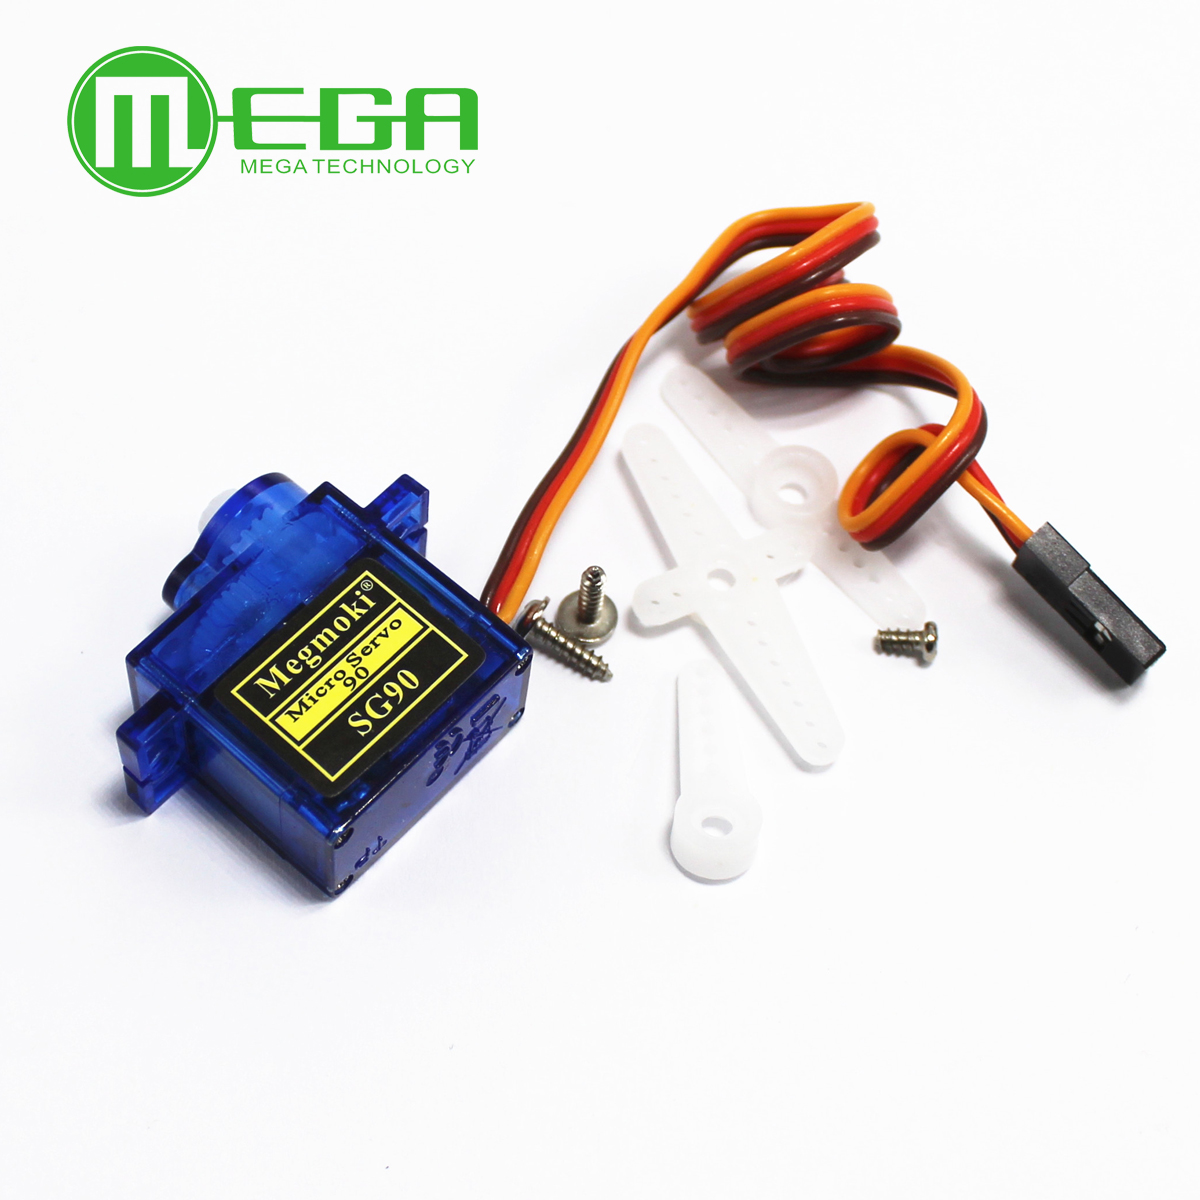 1Pcs Rc Mini Micro 9g 1.6KG Servo SG90 For RC 250 450 Helicopter Airplane Car